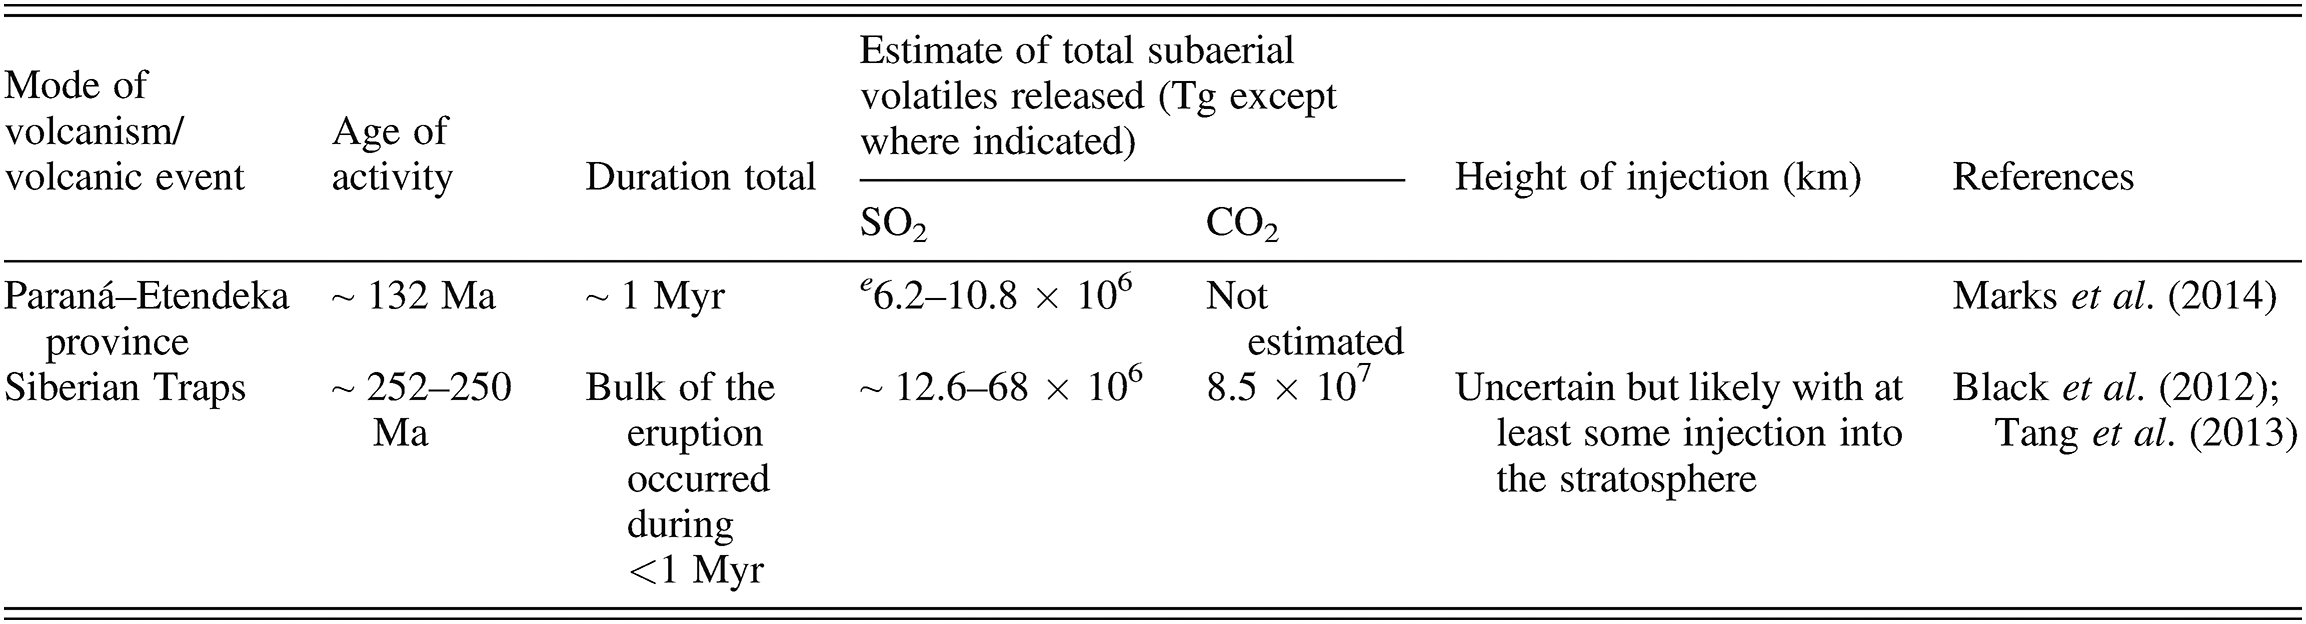 Modes of volcanically induced global environmental change